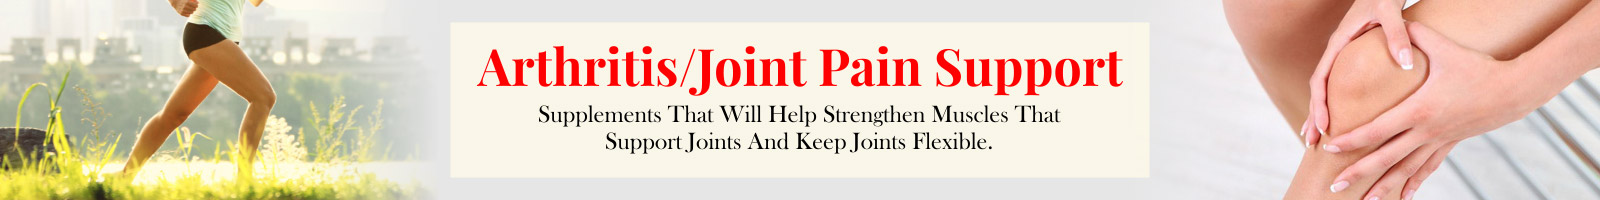 Arthritis/Joint Pain Support